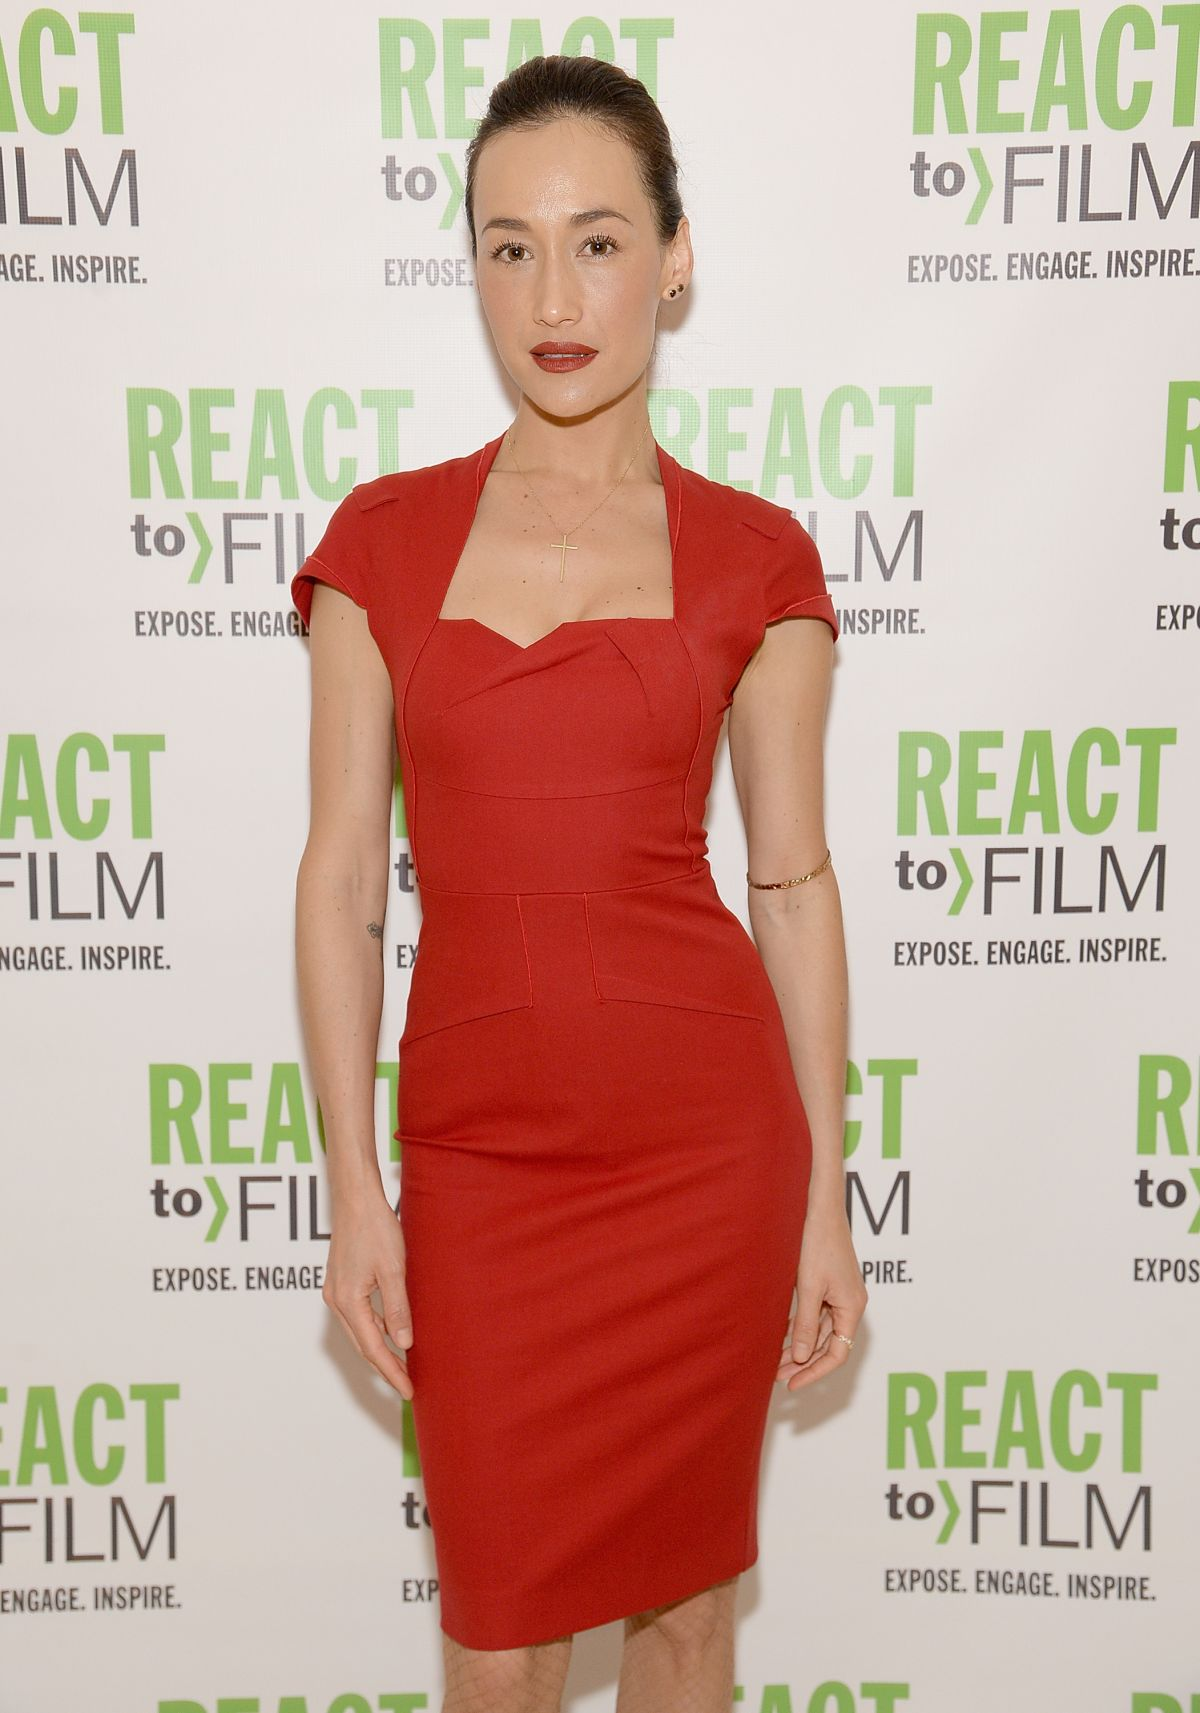 MAGGIE Q at the React to Film Awards in New York